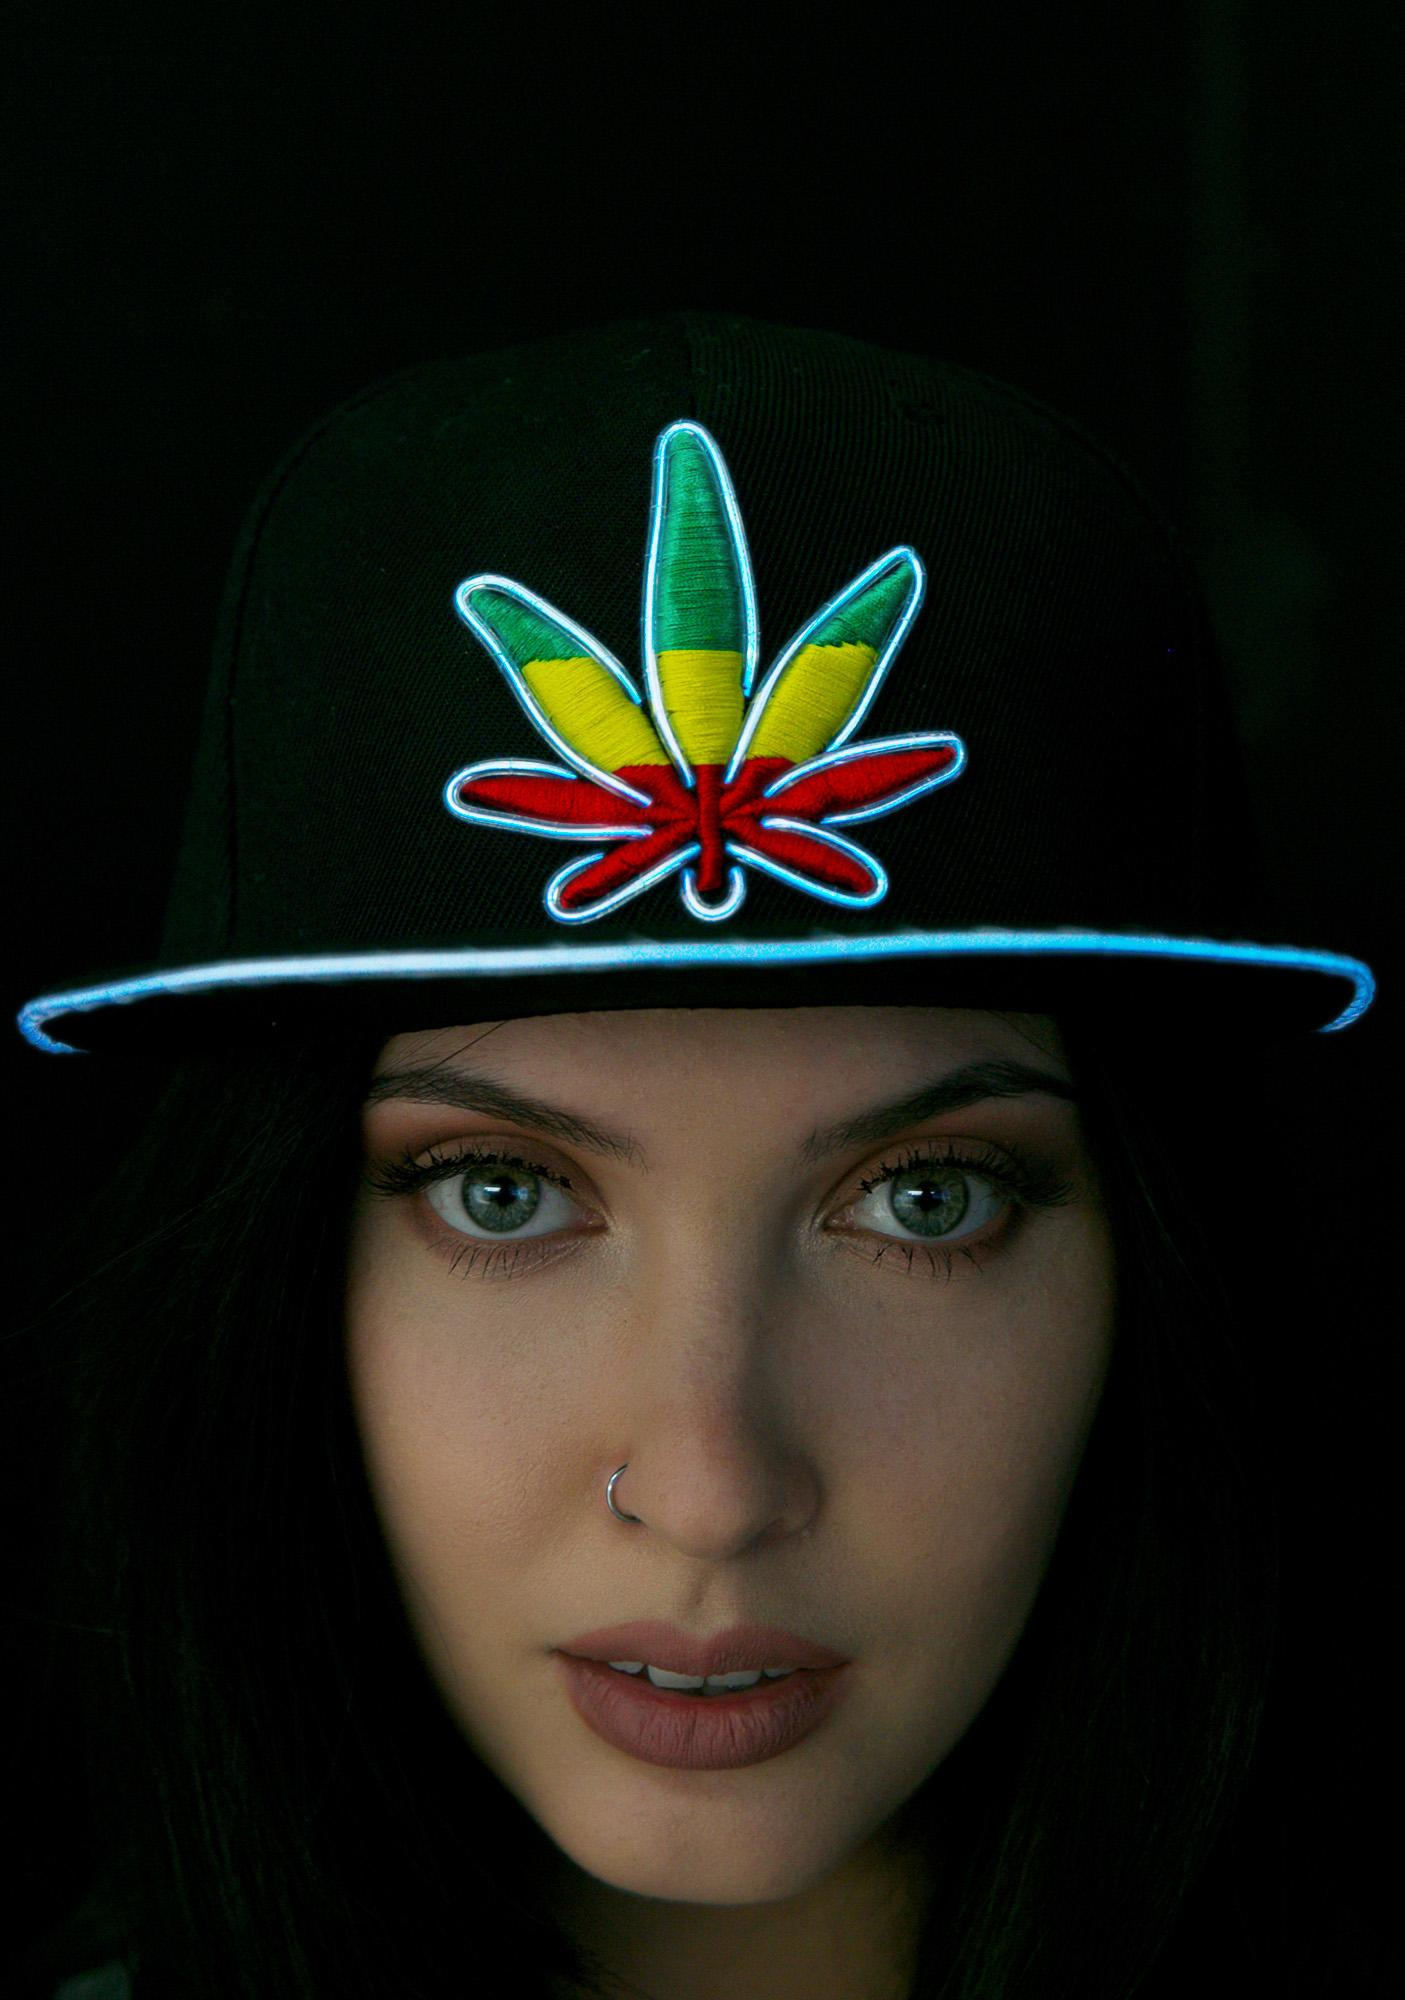 Electric Styles Light Up Marijuana Hat